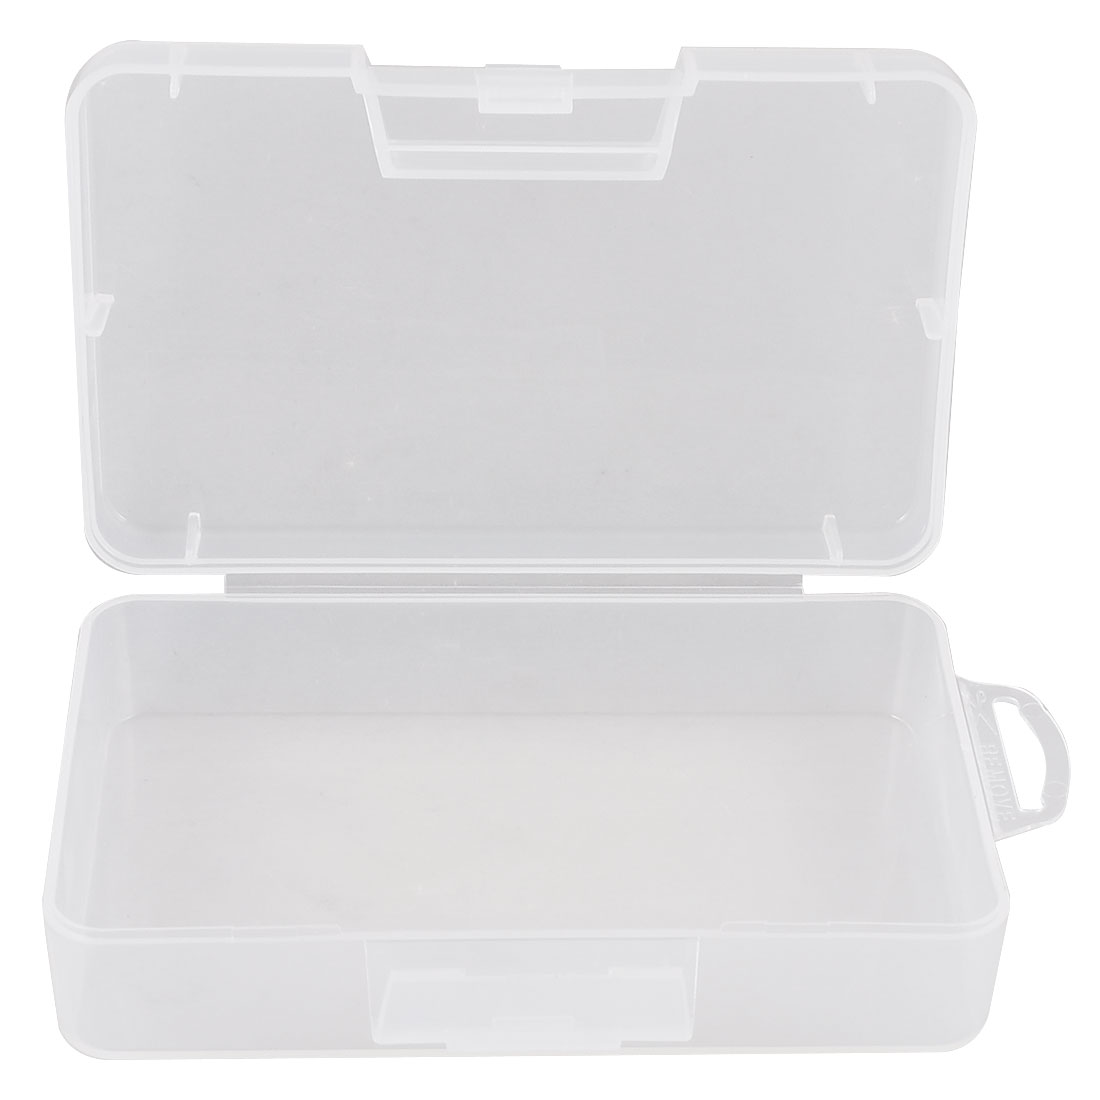 Clear Plastic Jewelry Rectangle Case Box Holder Container 14.5cm x 9cm x 4cm